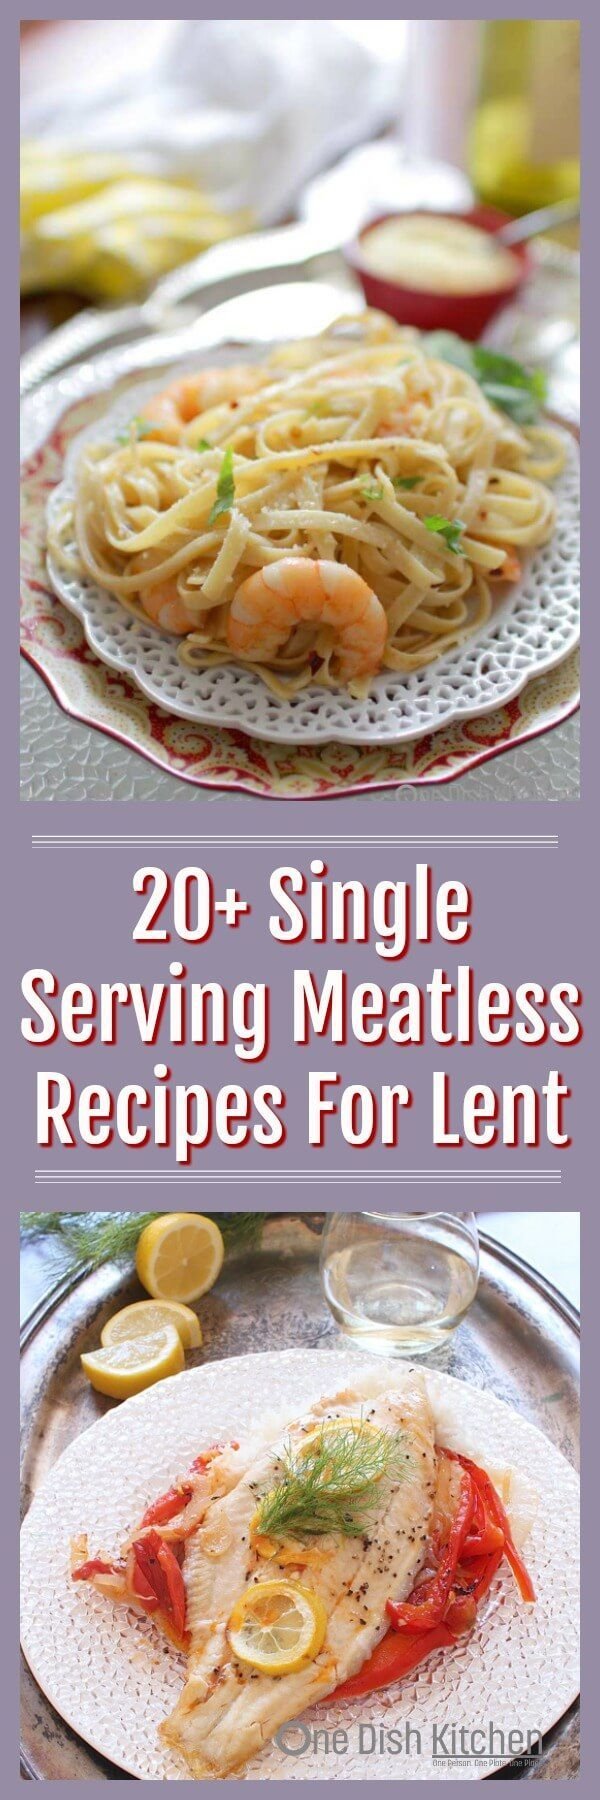 Cooking for one and looking for meatless meals? Look no further, here are OVER 20 SINGLE SERVING MEATLESS RECIPES that are perfect for Lent or anytime. You'll find pasta recipes, vegetarian soups, main dish salads and wonderful seafood dishes. All in single serving sizes. | ONE DISH KITCHEN | #Lent #vegetarian #seafood #pasta #single #cookingforone